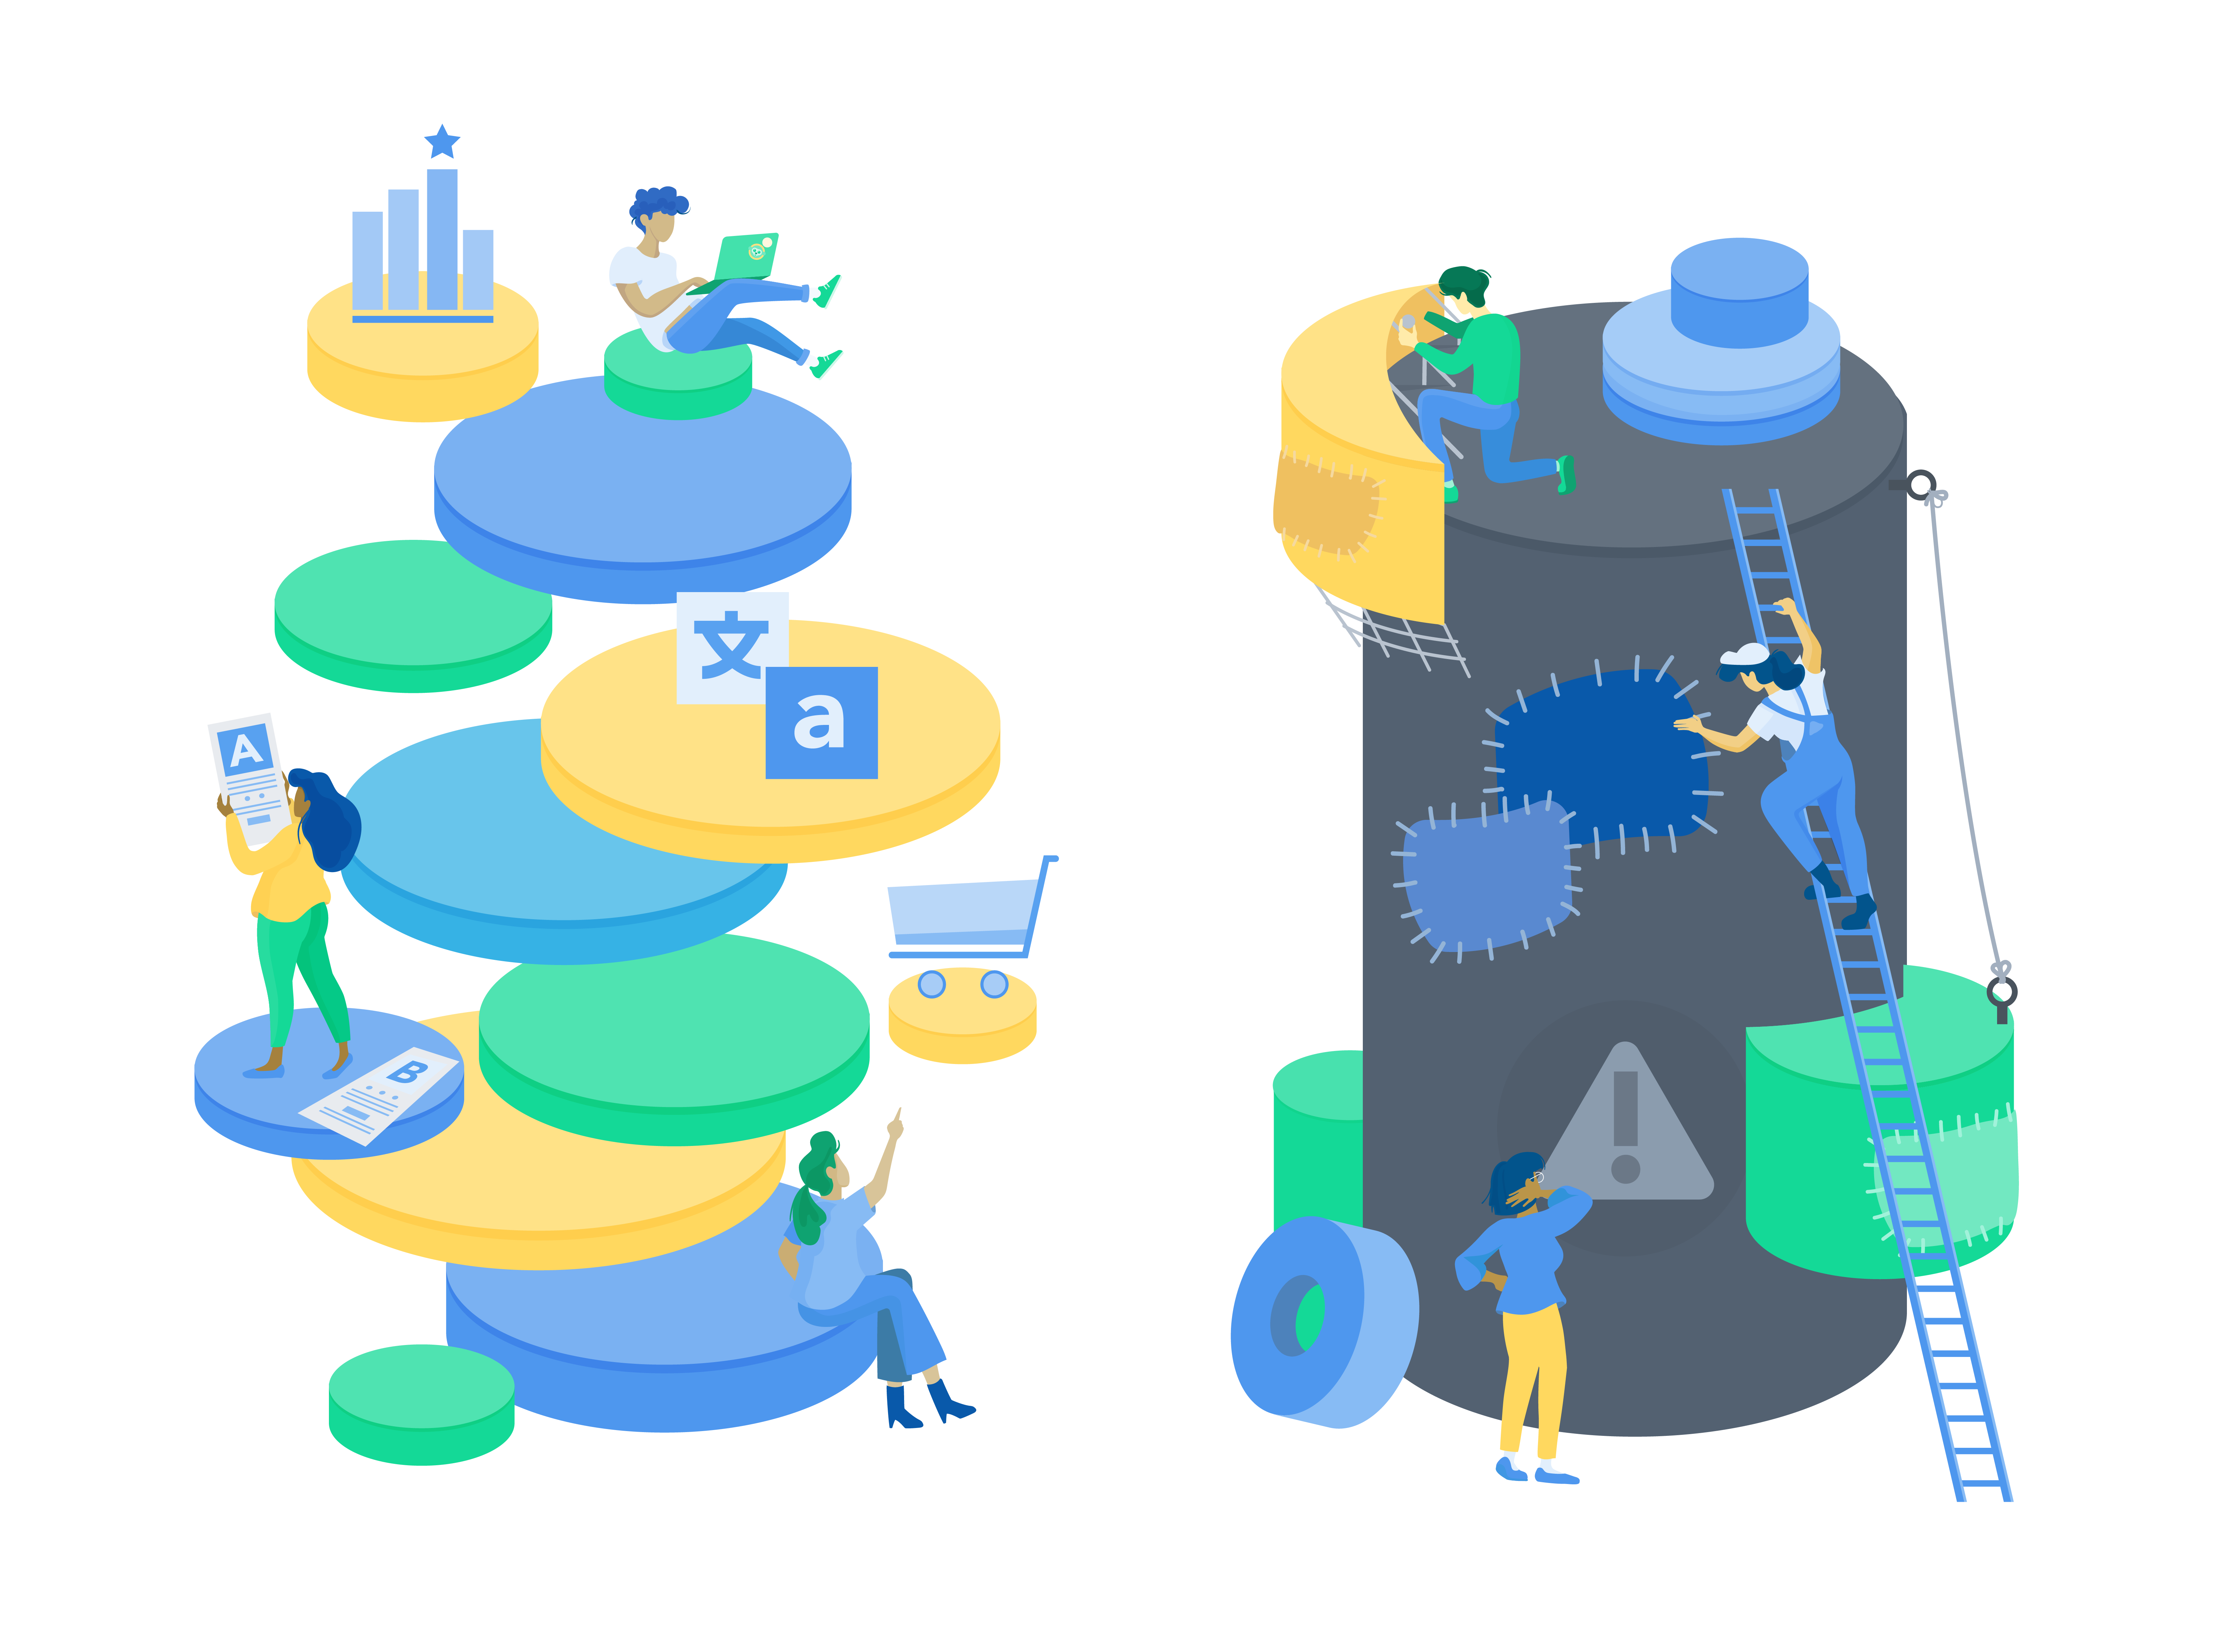 Illustration of the benefits of digital experience stacks versus monolithic suites